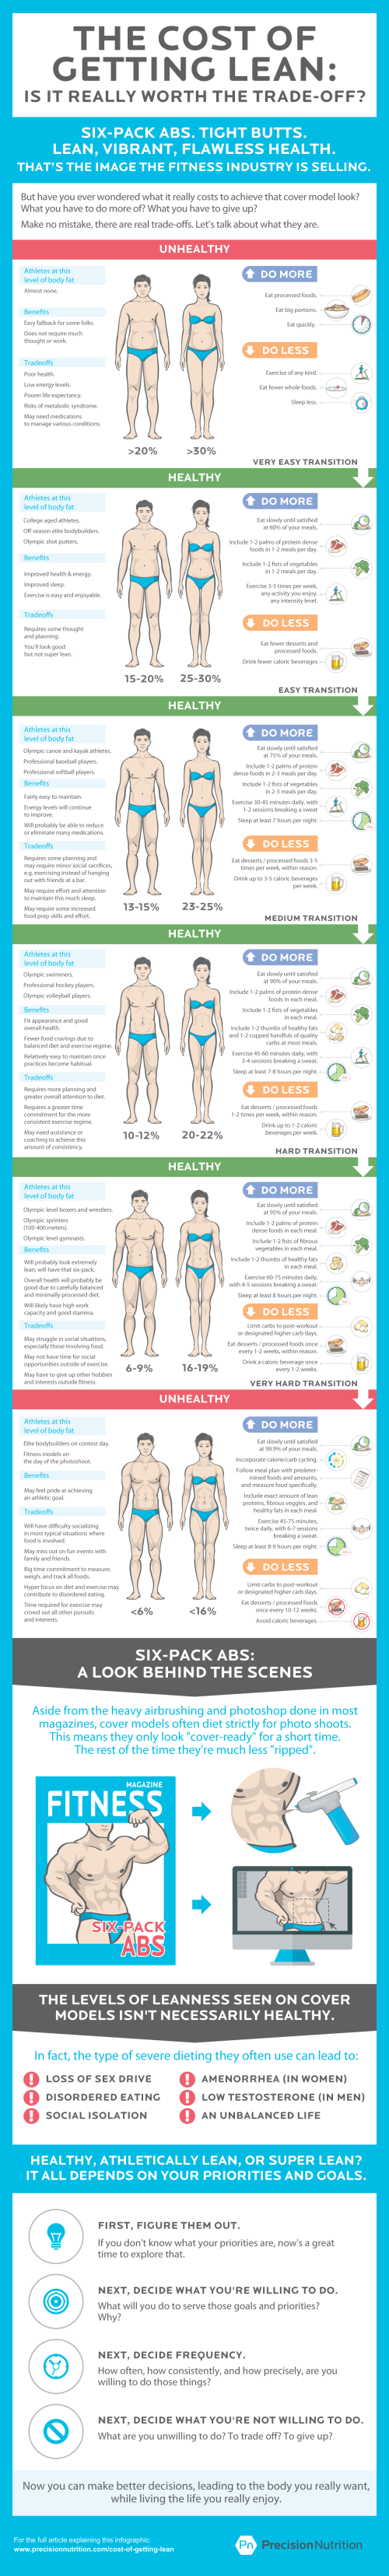 precision-nutrition-cost-of-getting-lean-infographic